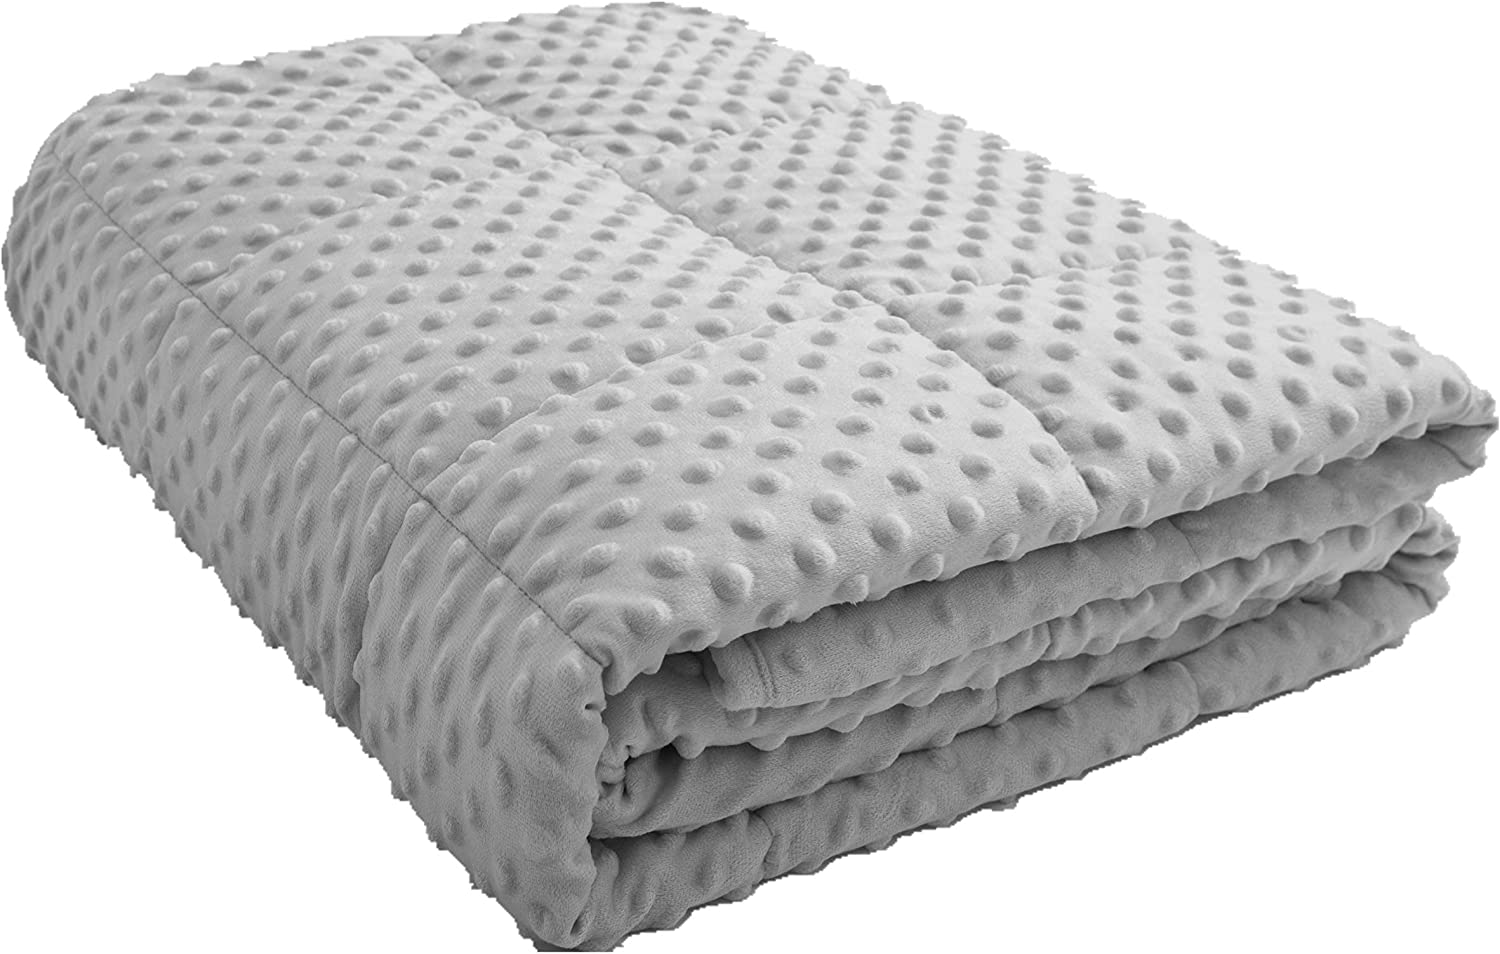 Weighted Blankets ALANSMA Kinds Weighted Blanket for All Season ...